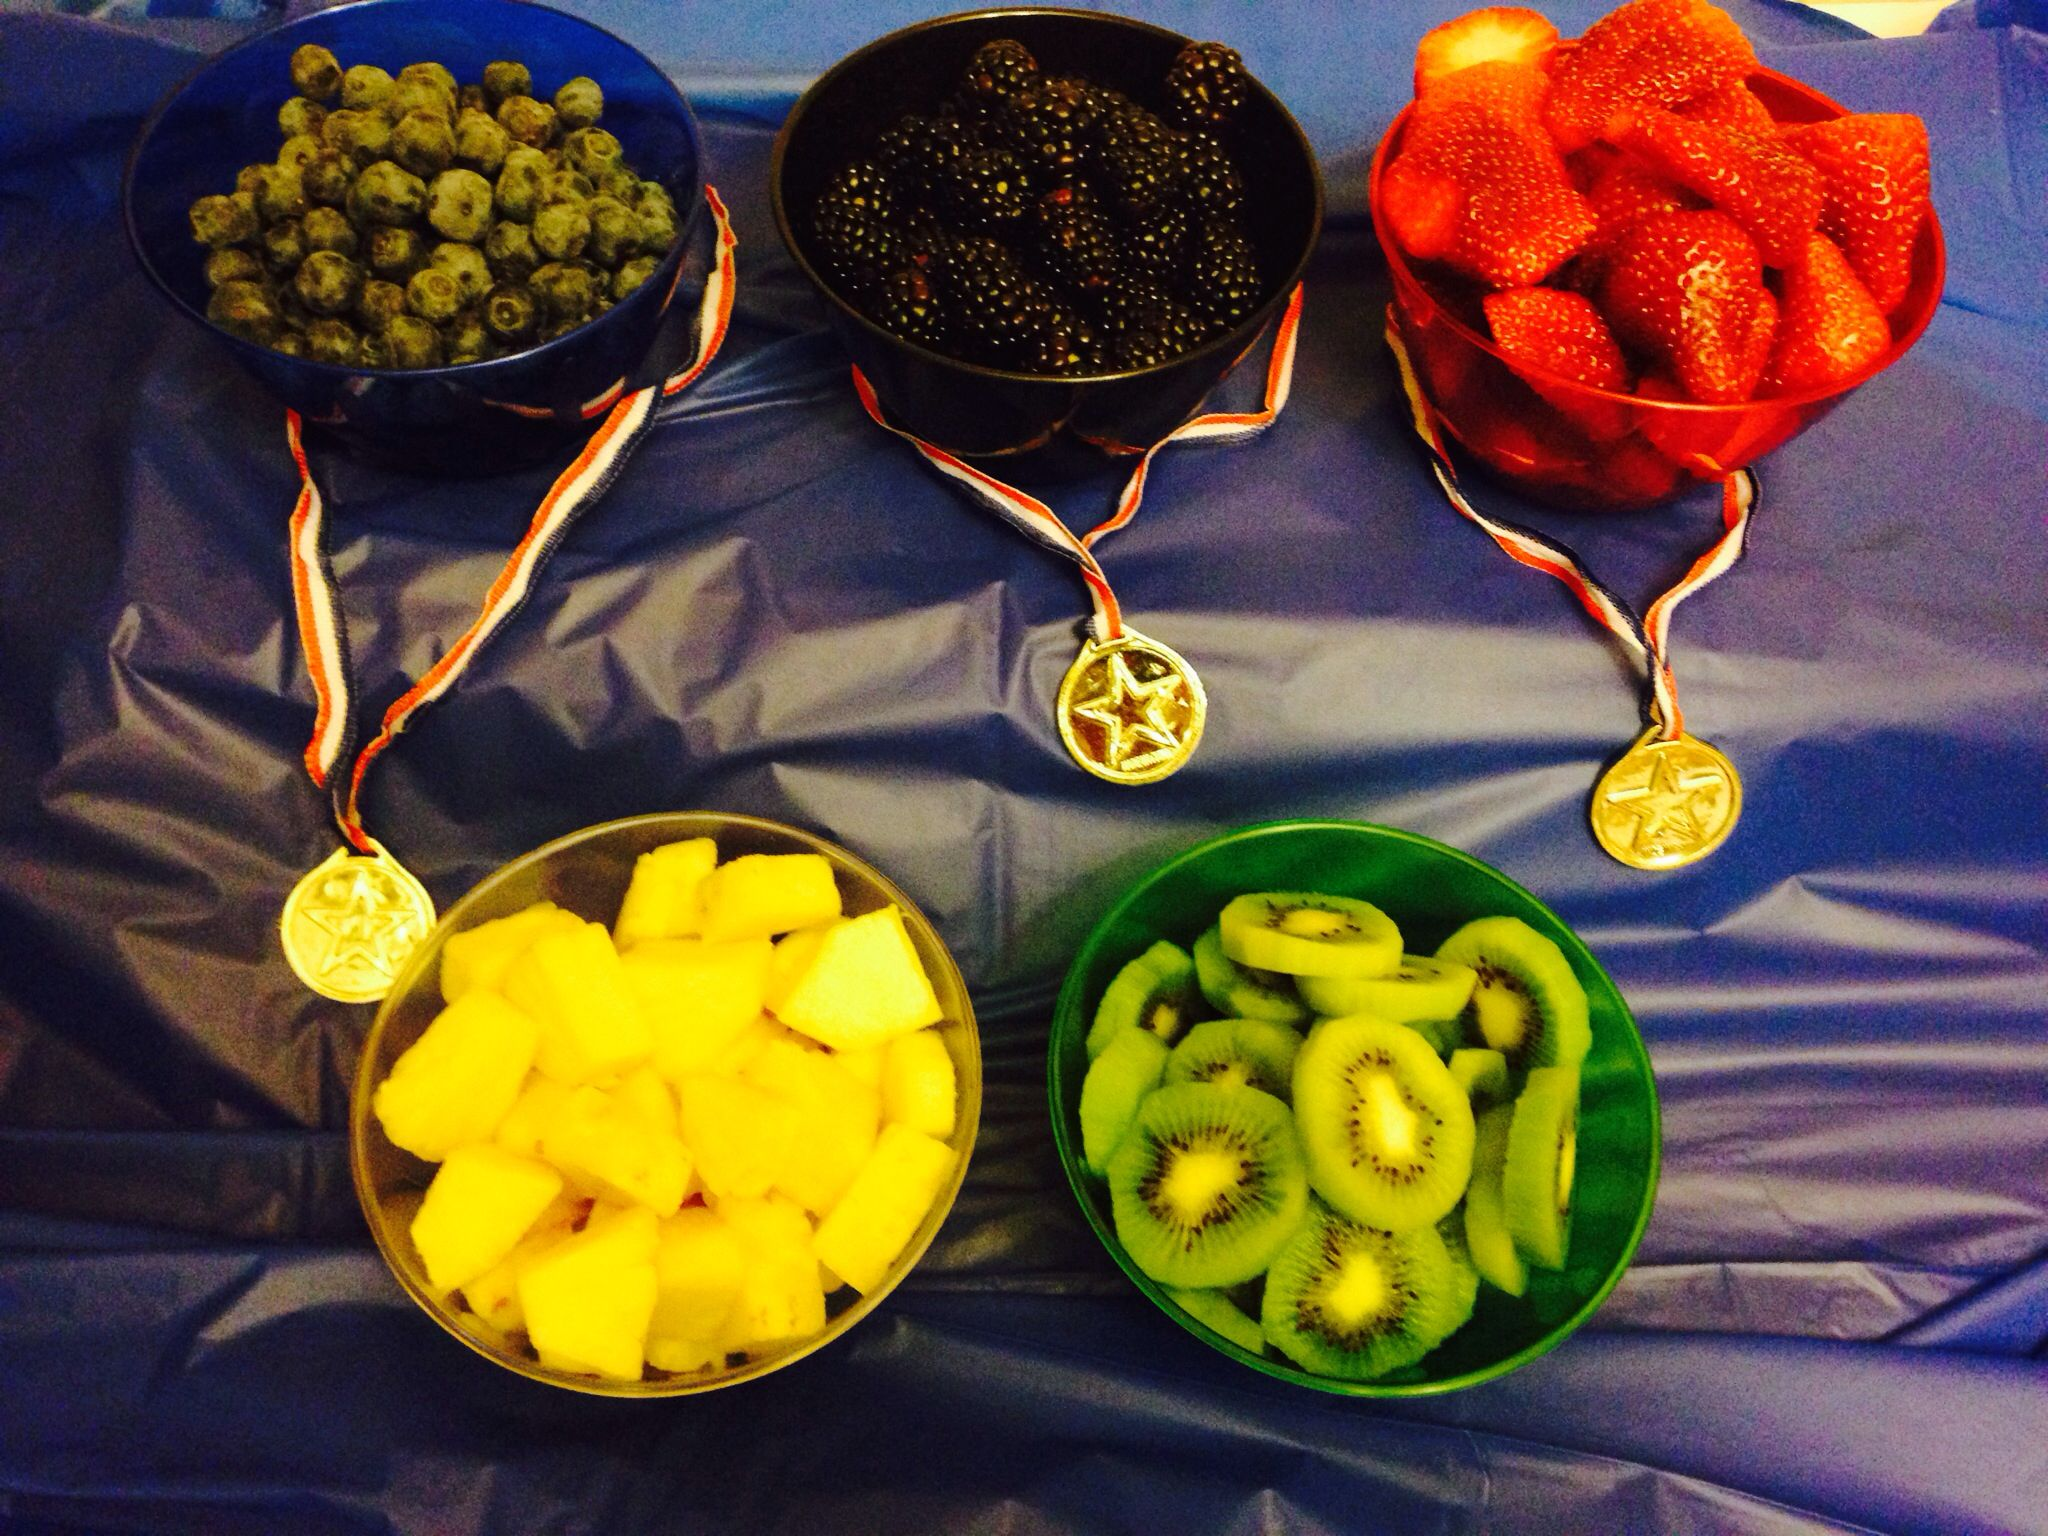 Fruit bowls Olympic Rings